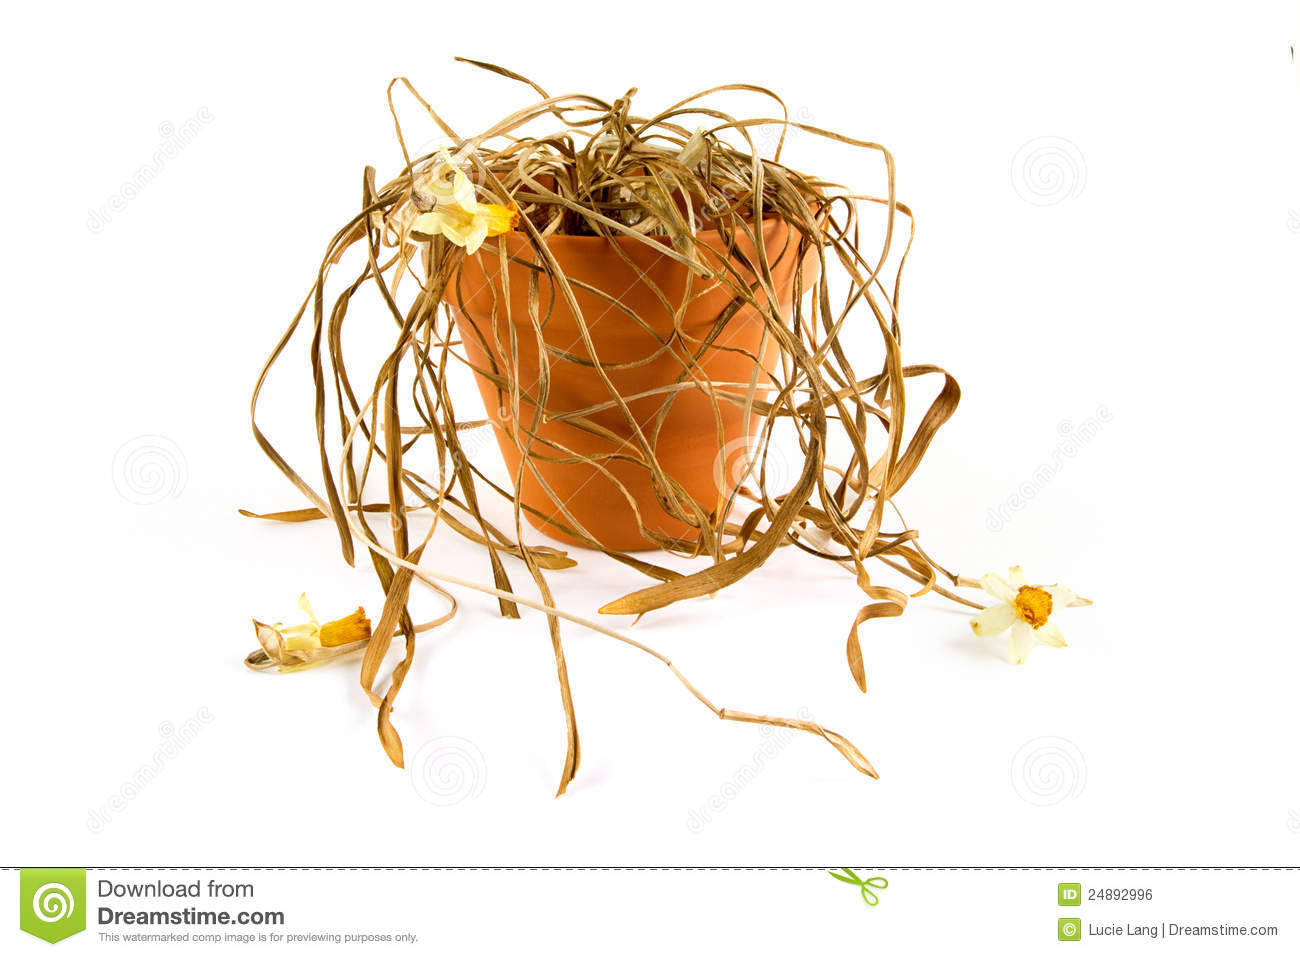 Clipart no roots withered dying plant.